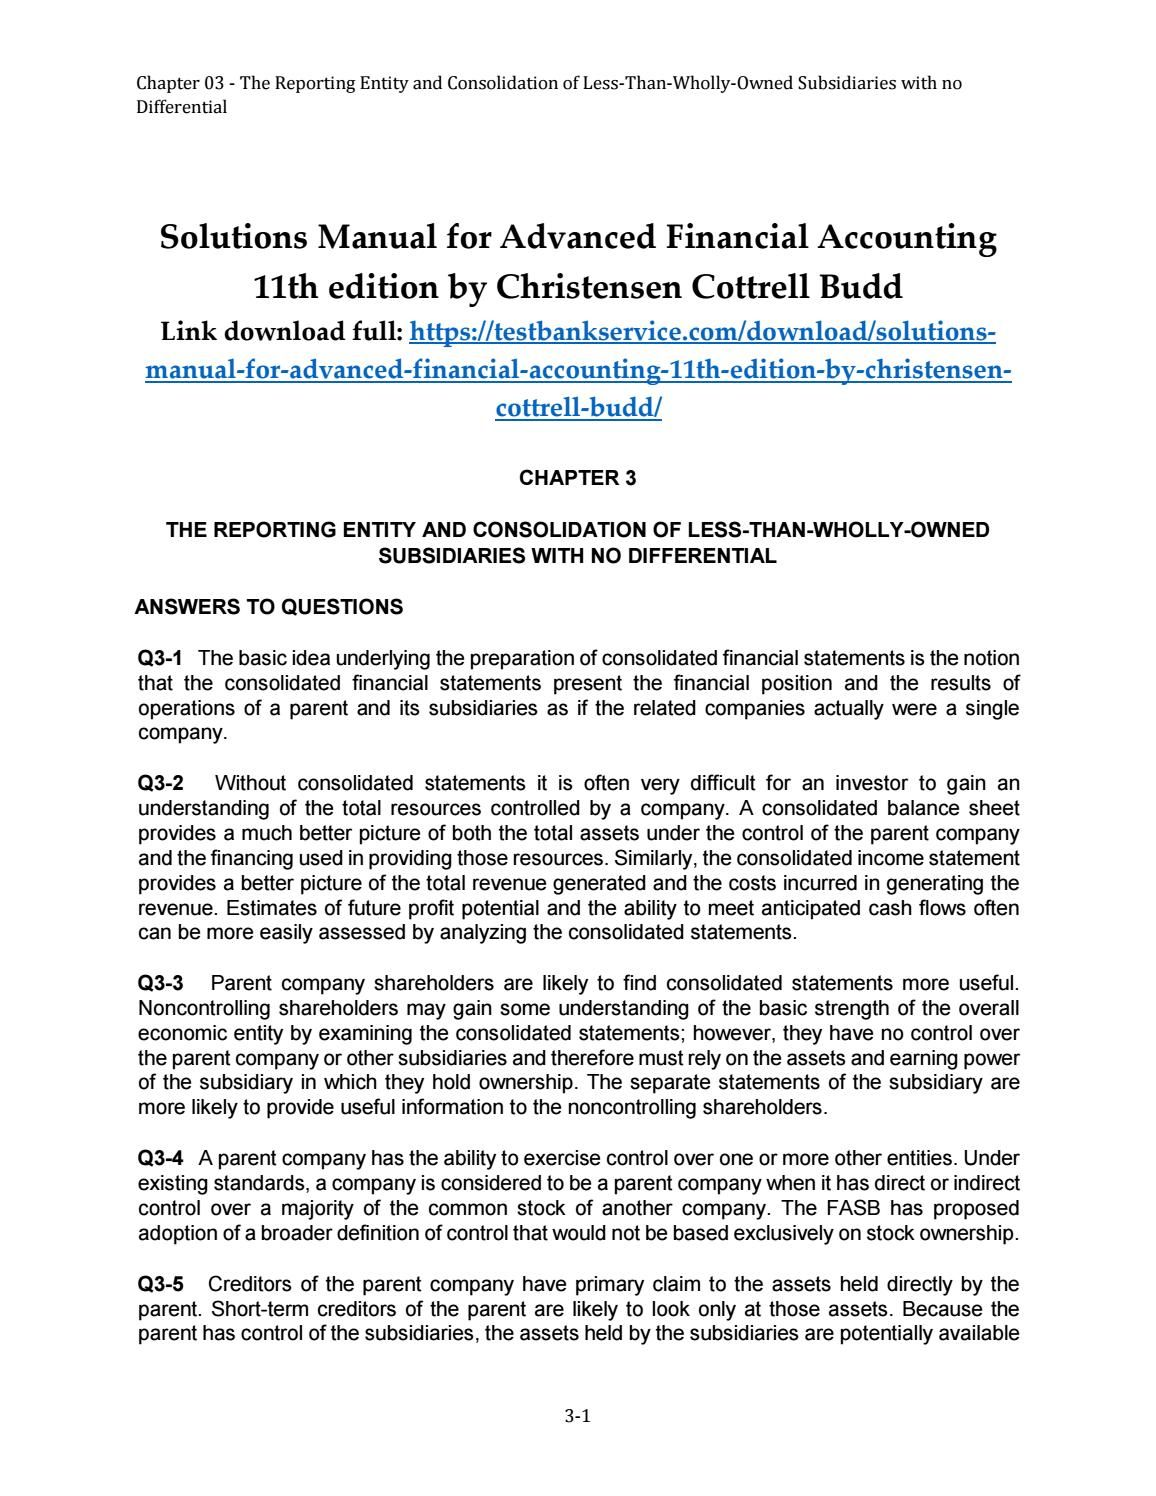 Solutions manual for advanced financial accounting 11th edition by  christensen cottrell budd